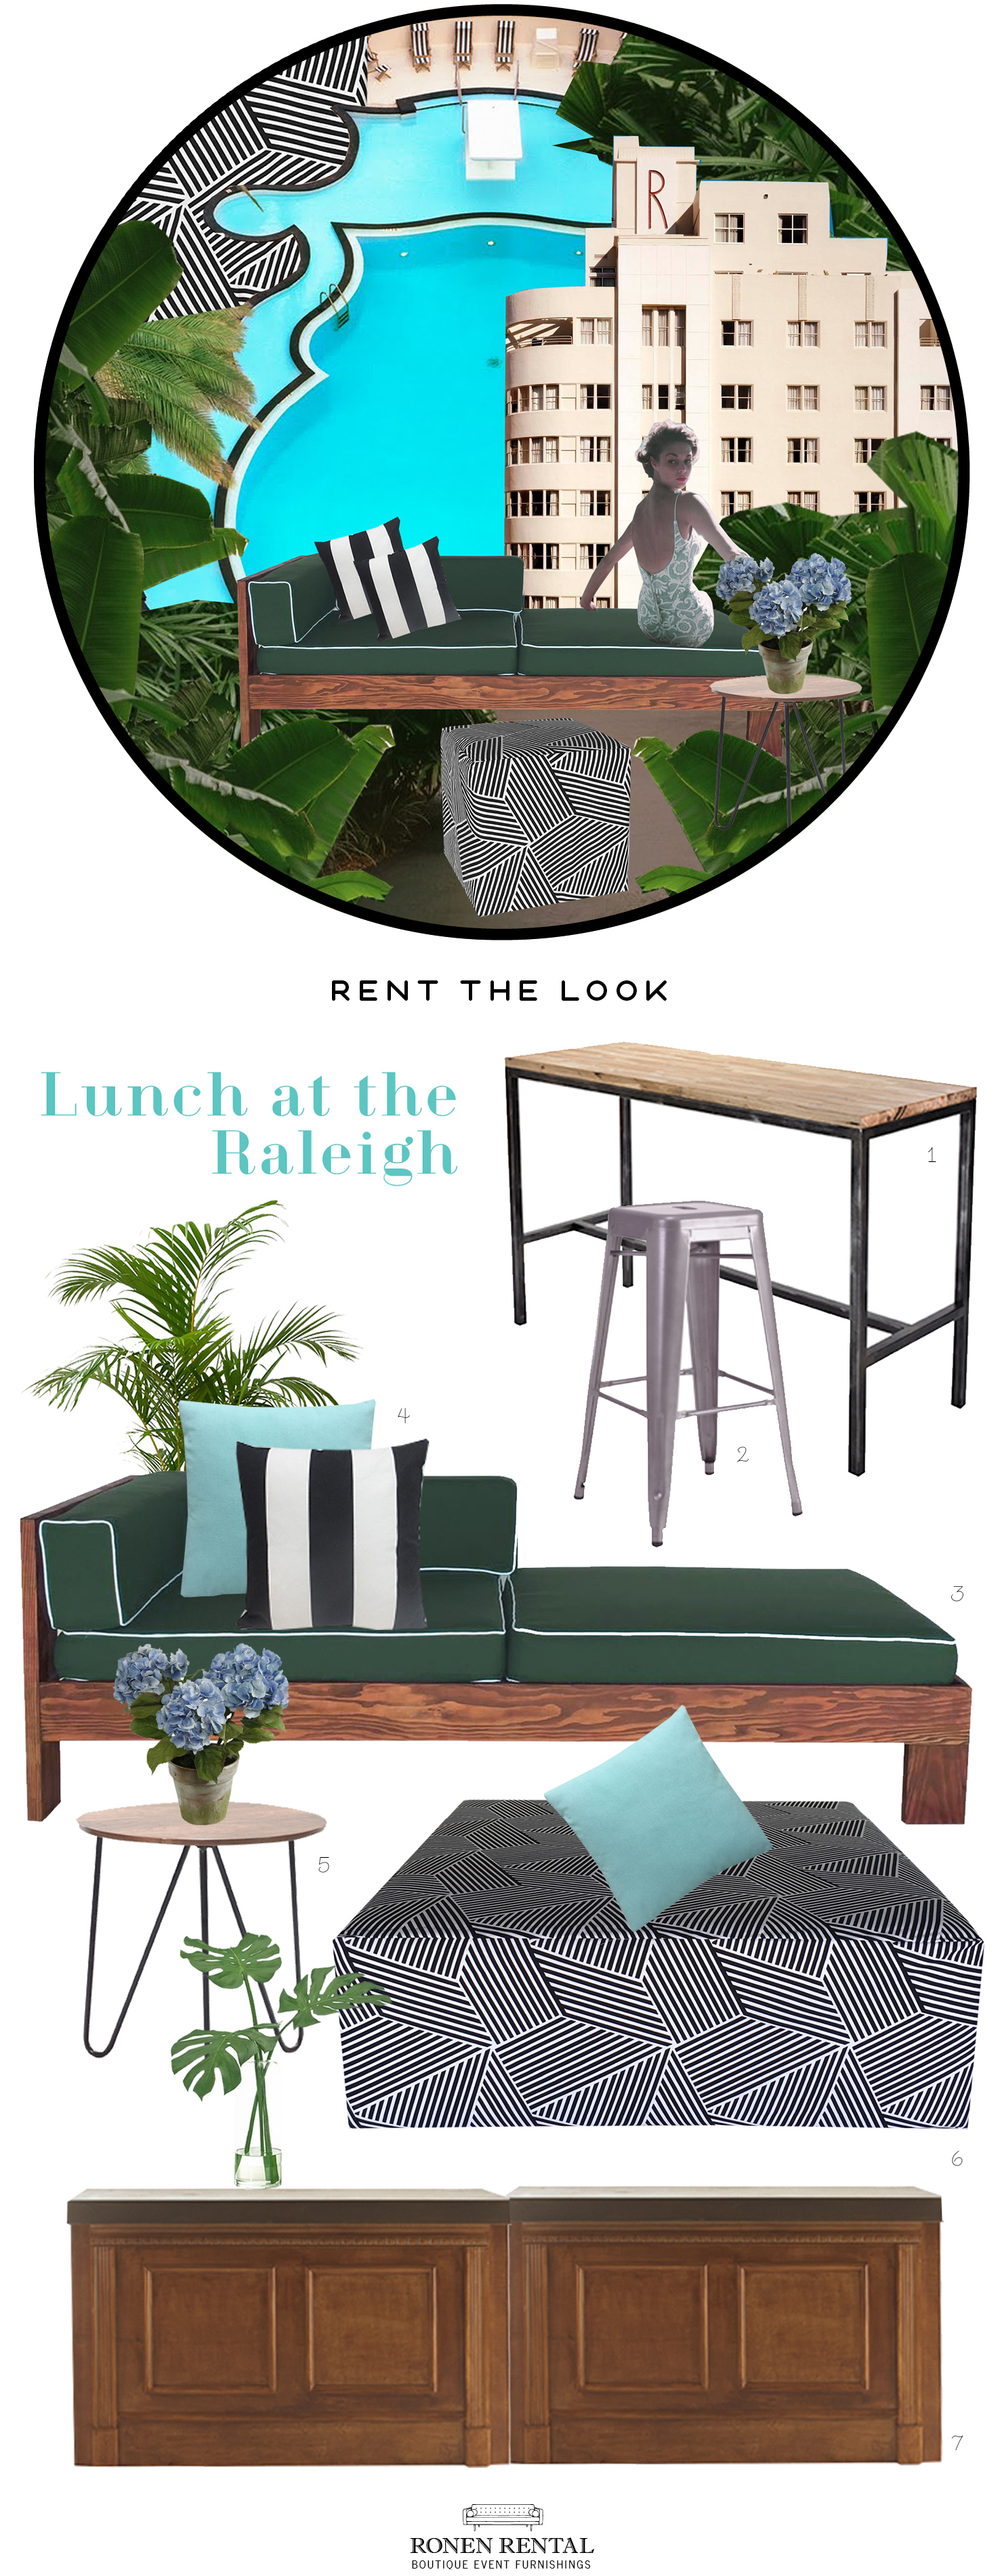 Ronen Rental - Rent the Look - lunch at the raleigh